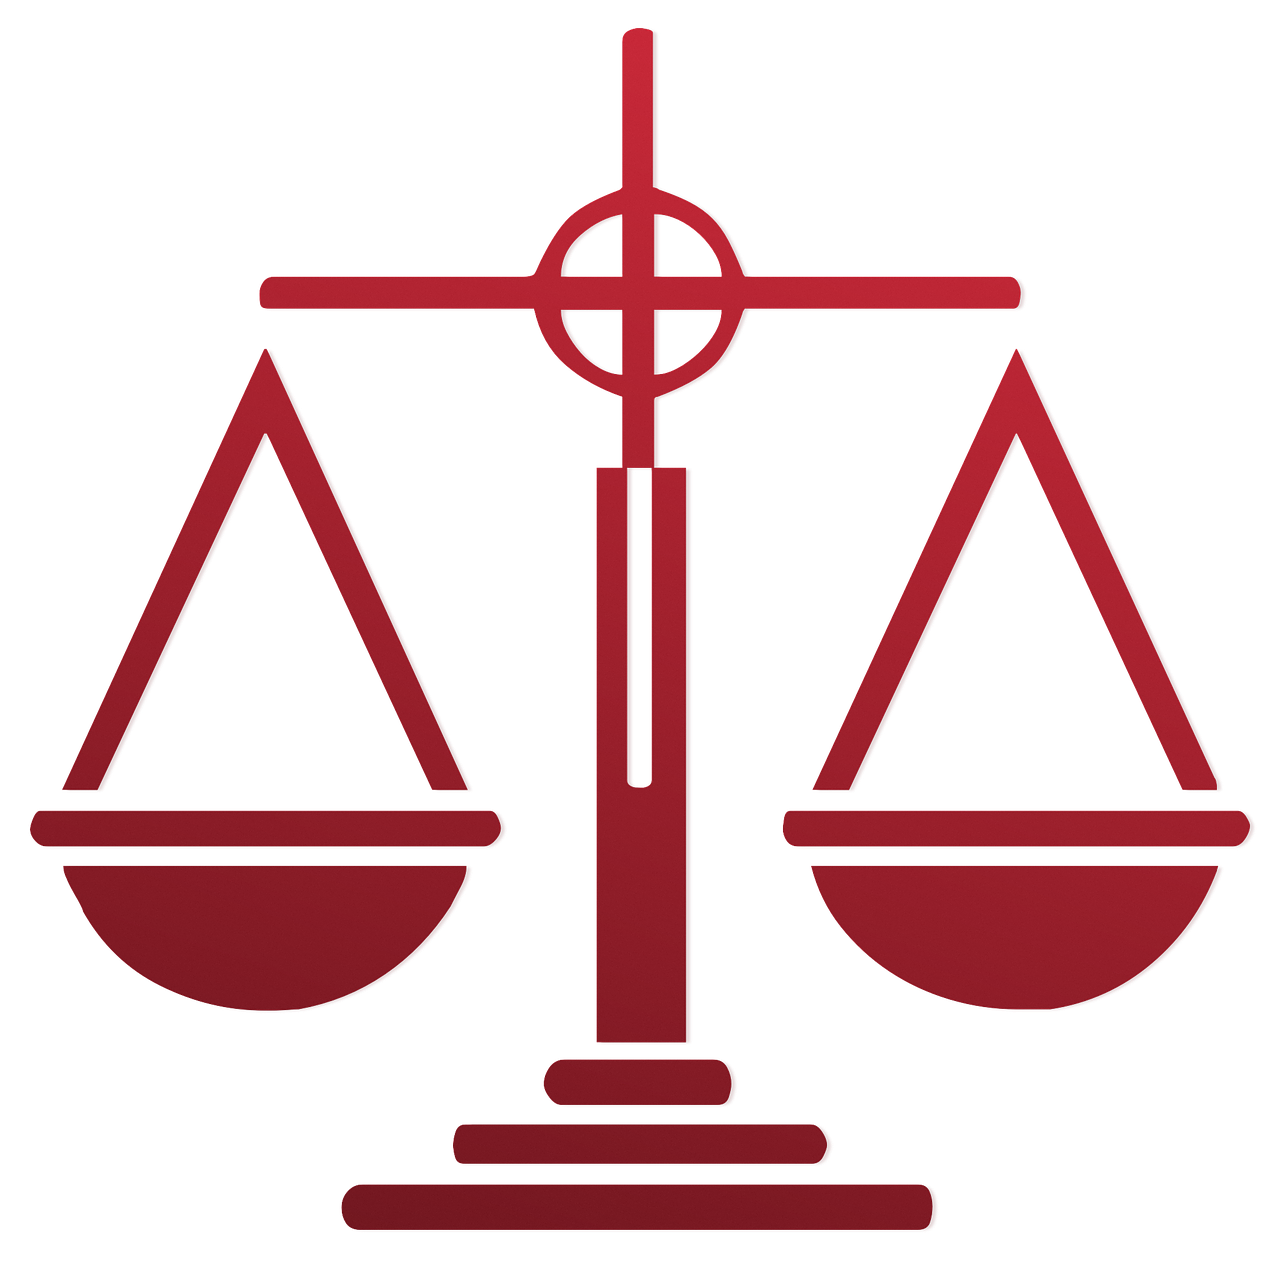 Law clipart criminal lawyer. In natchitoches la colbert